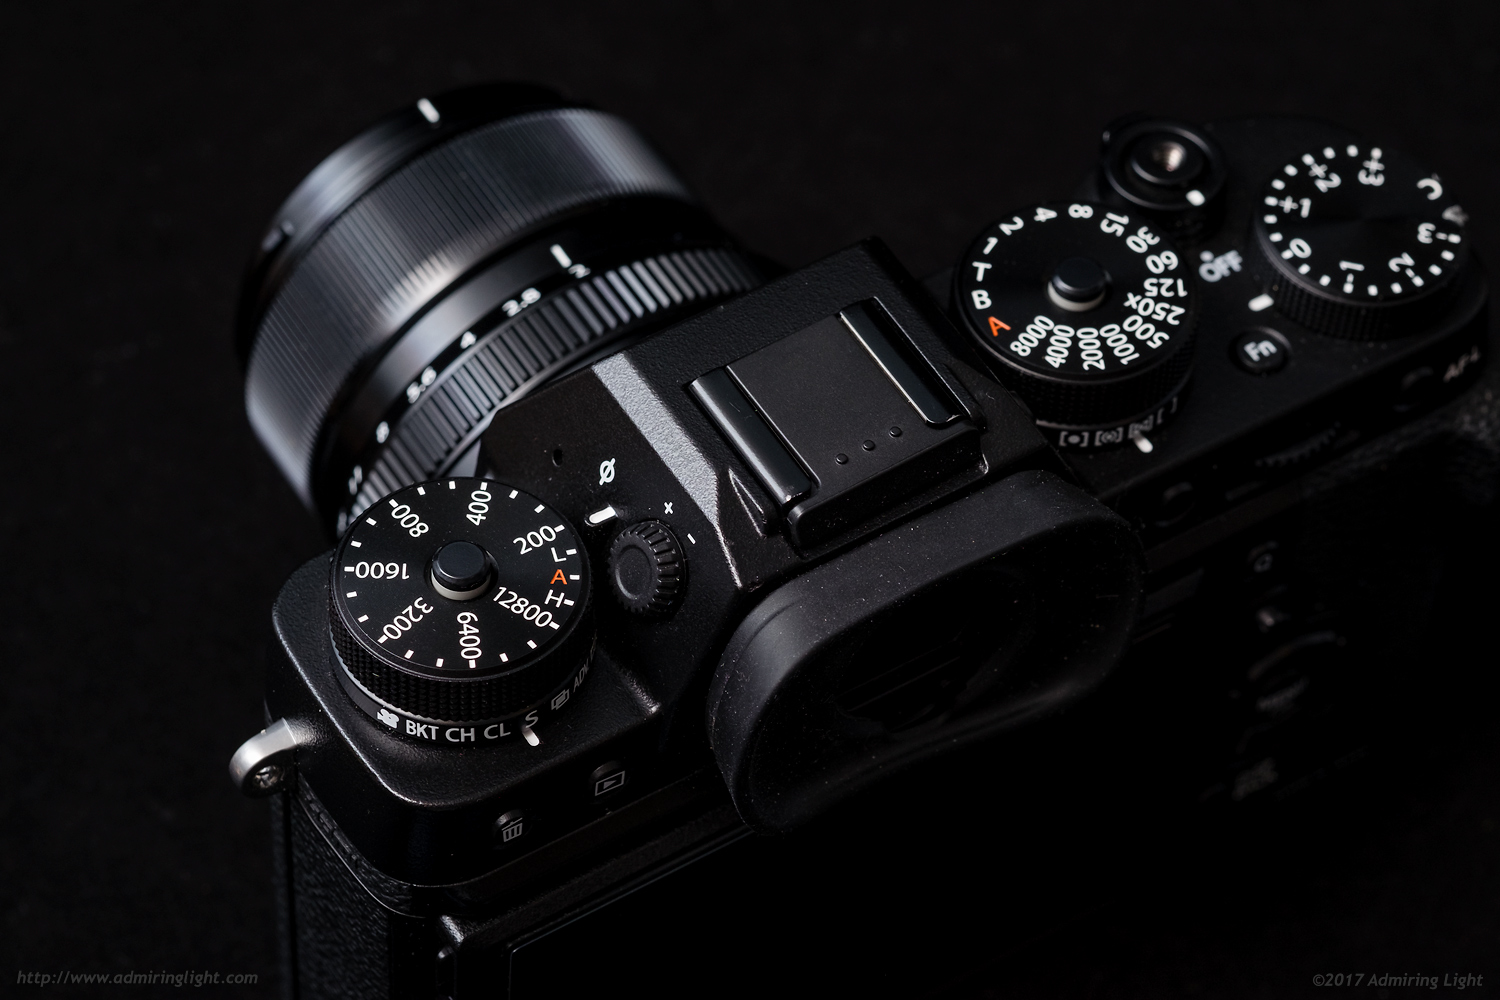 The top dials of the X-T2 allow for excellent direct control of settings.